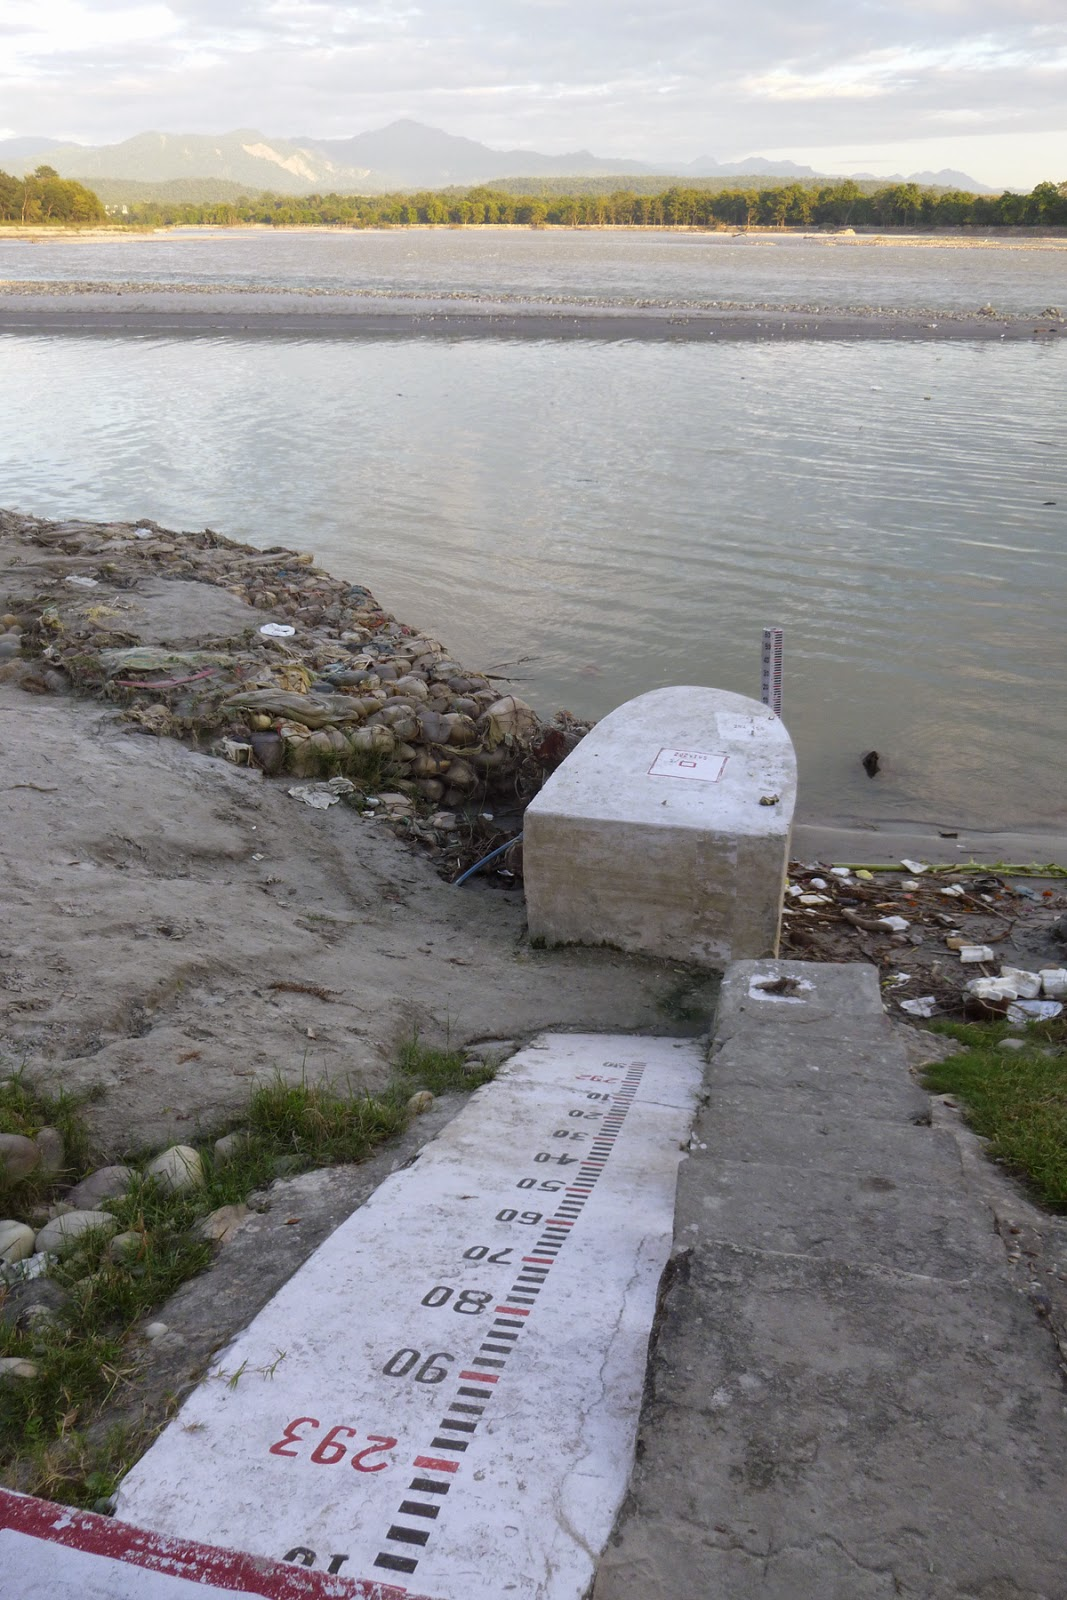 Gauging station on the river Ganges. Photo: Mike Acreman